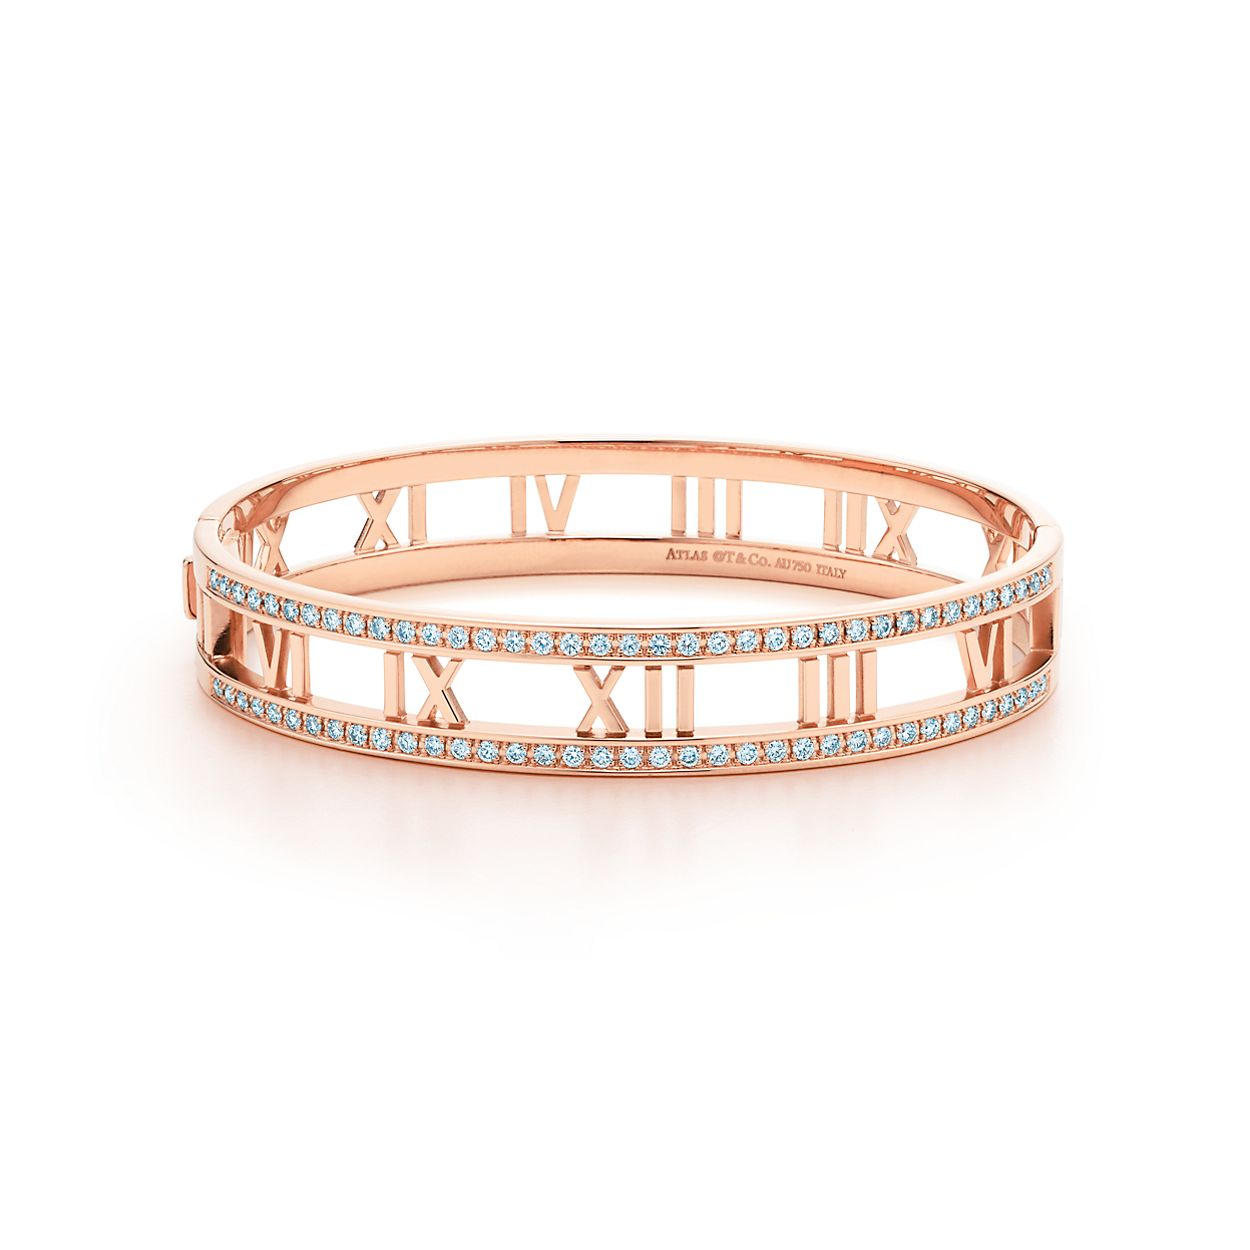 574d6fe51 Atlas Open Hinged Bangle In 18k Rose Gold With Diamonds Medium. Women S  Tiffany ...